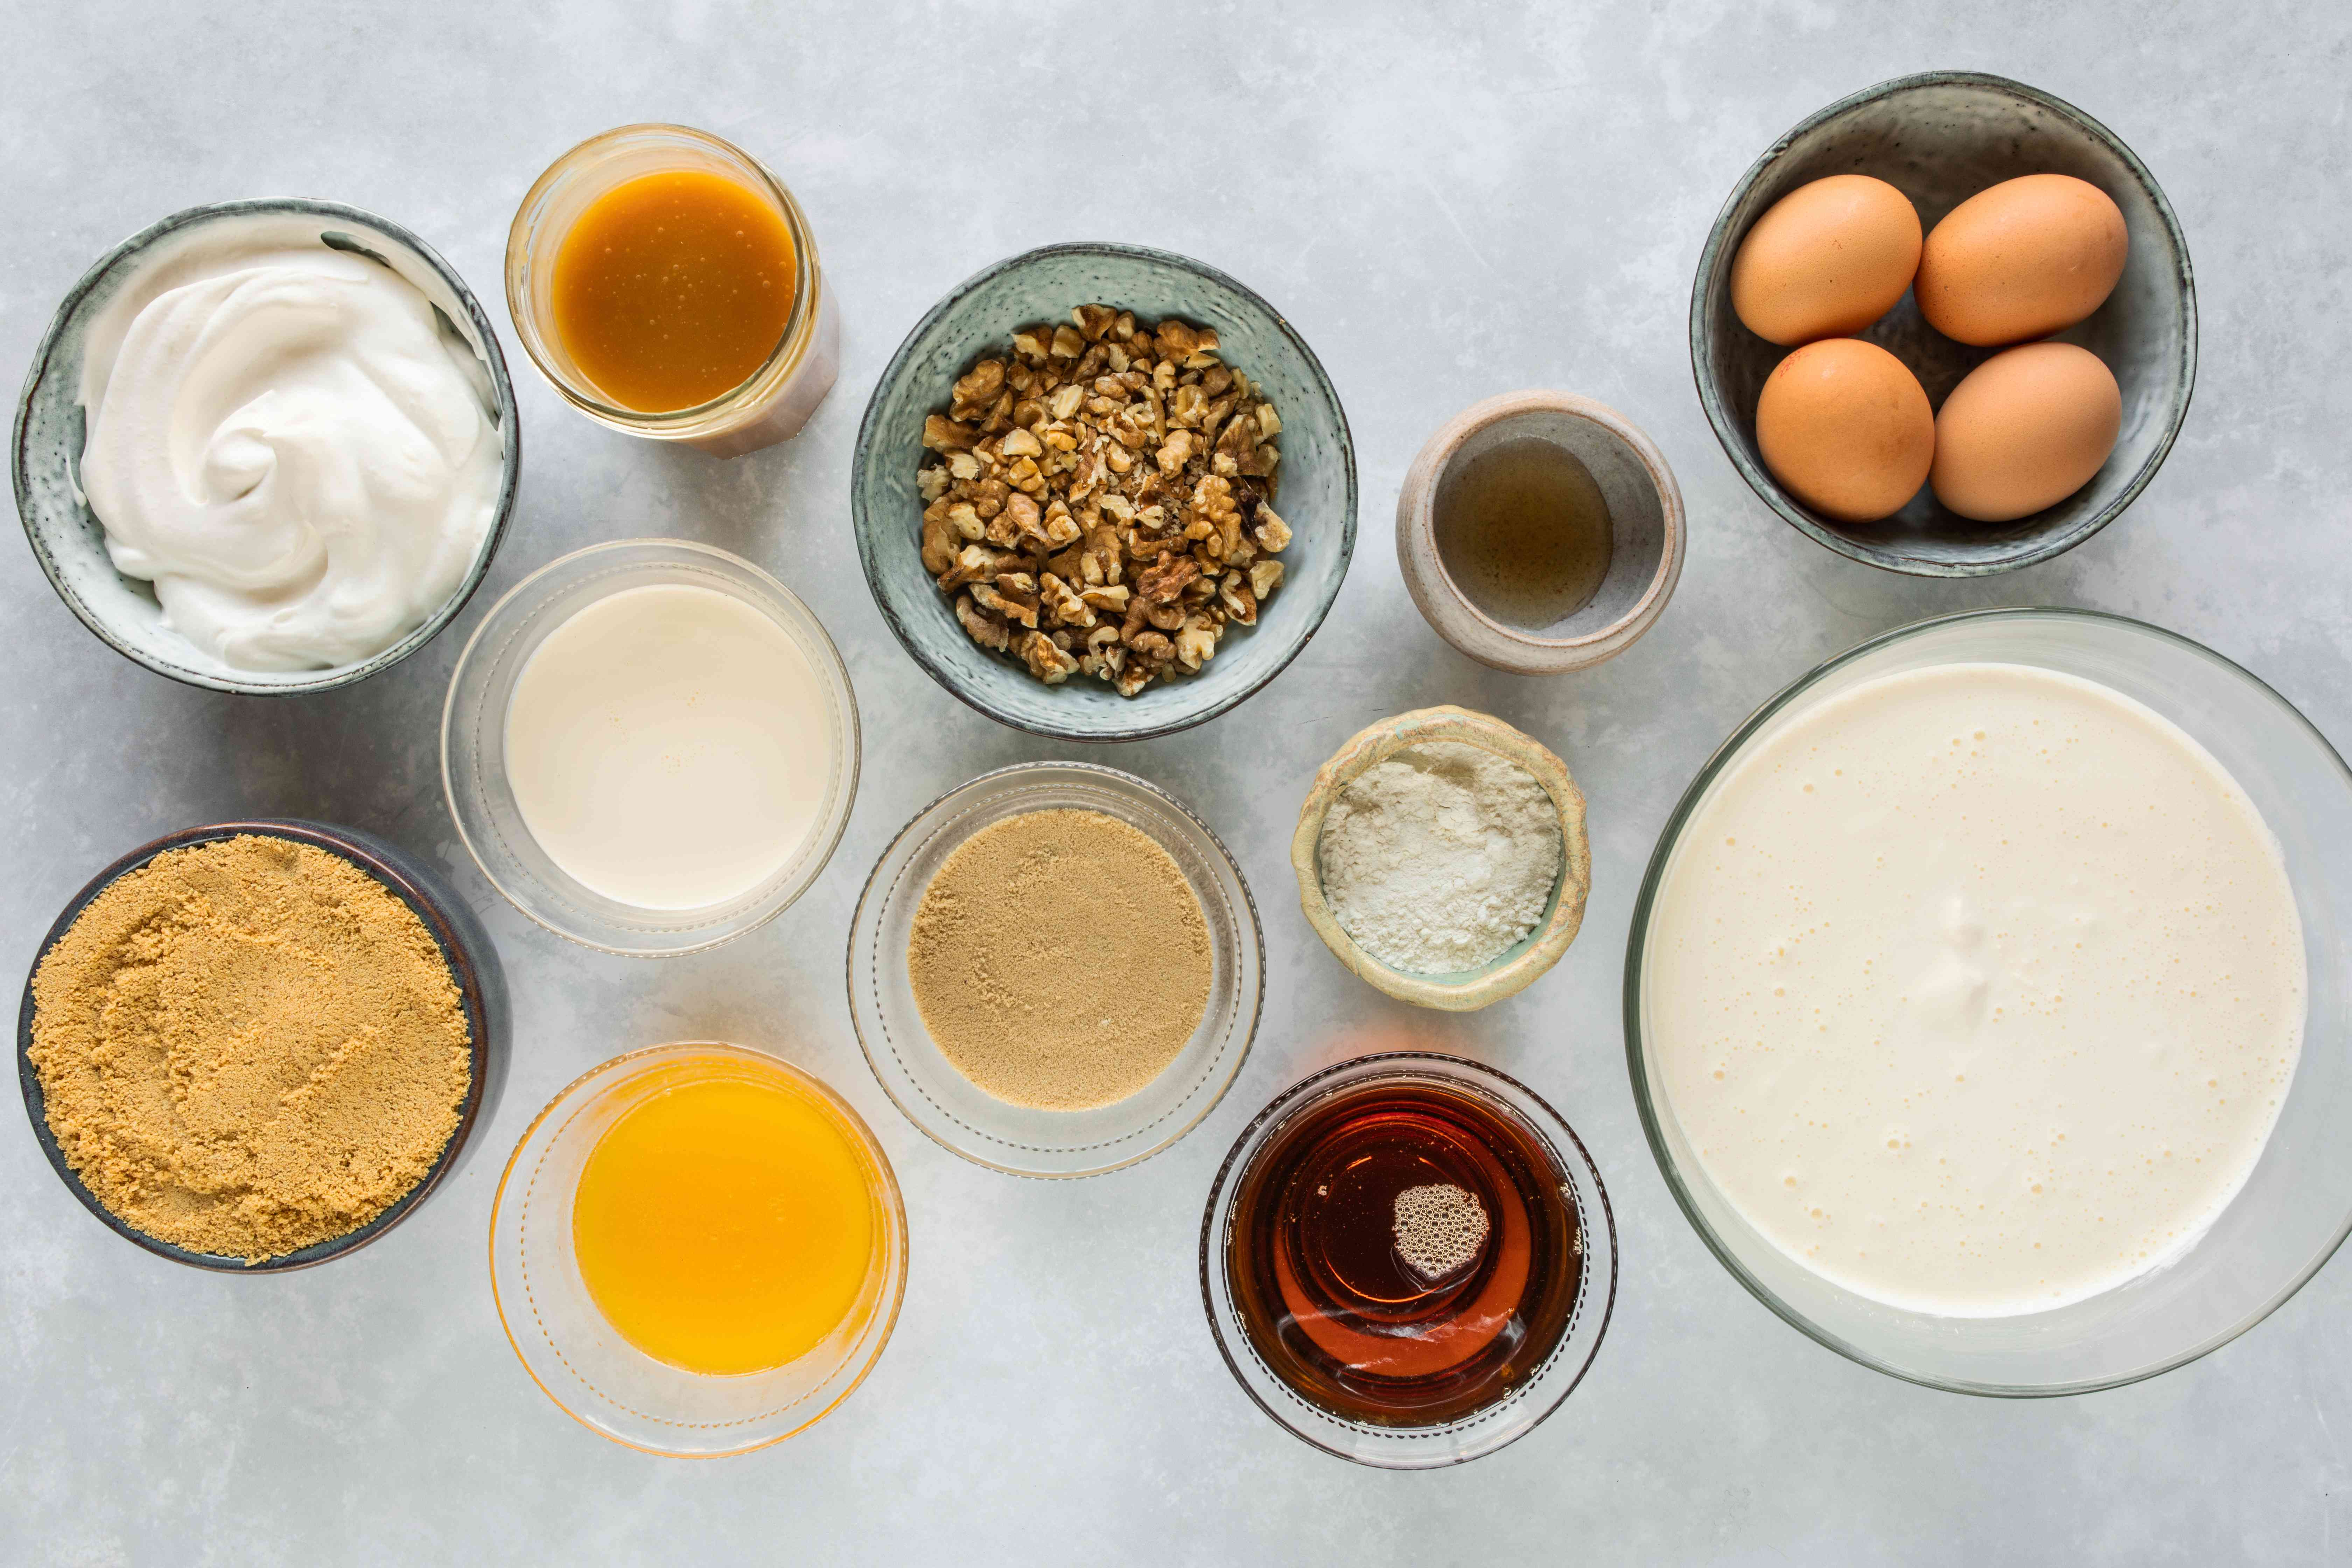 Ingredients for cheesecake crust